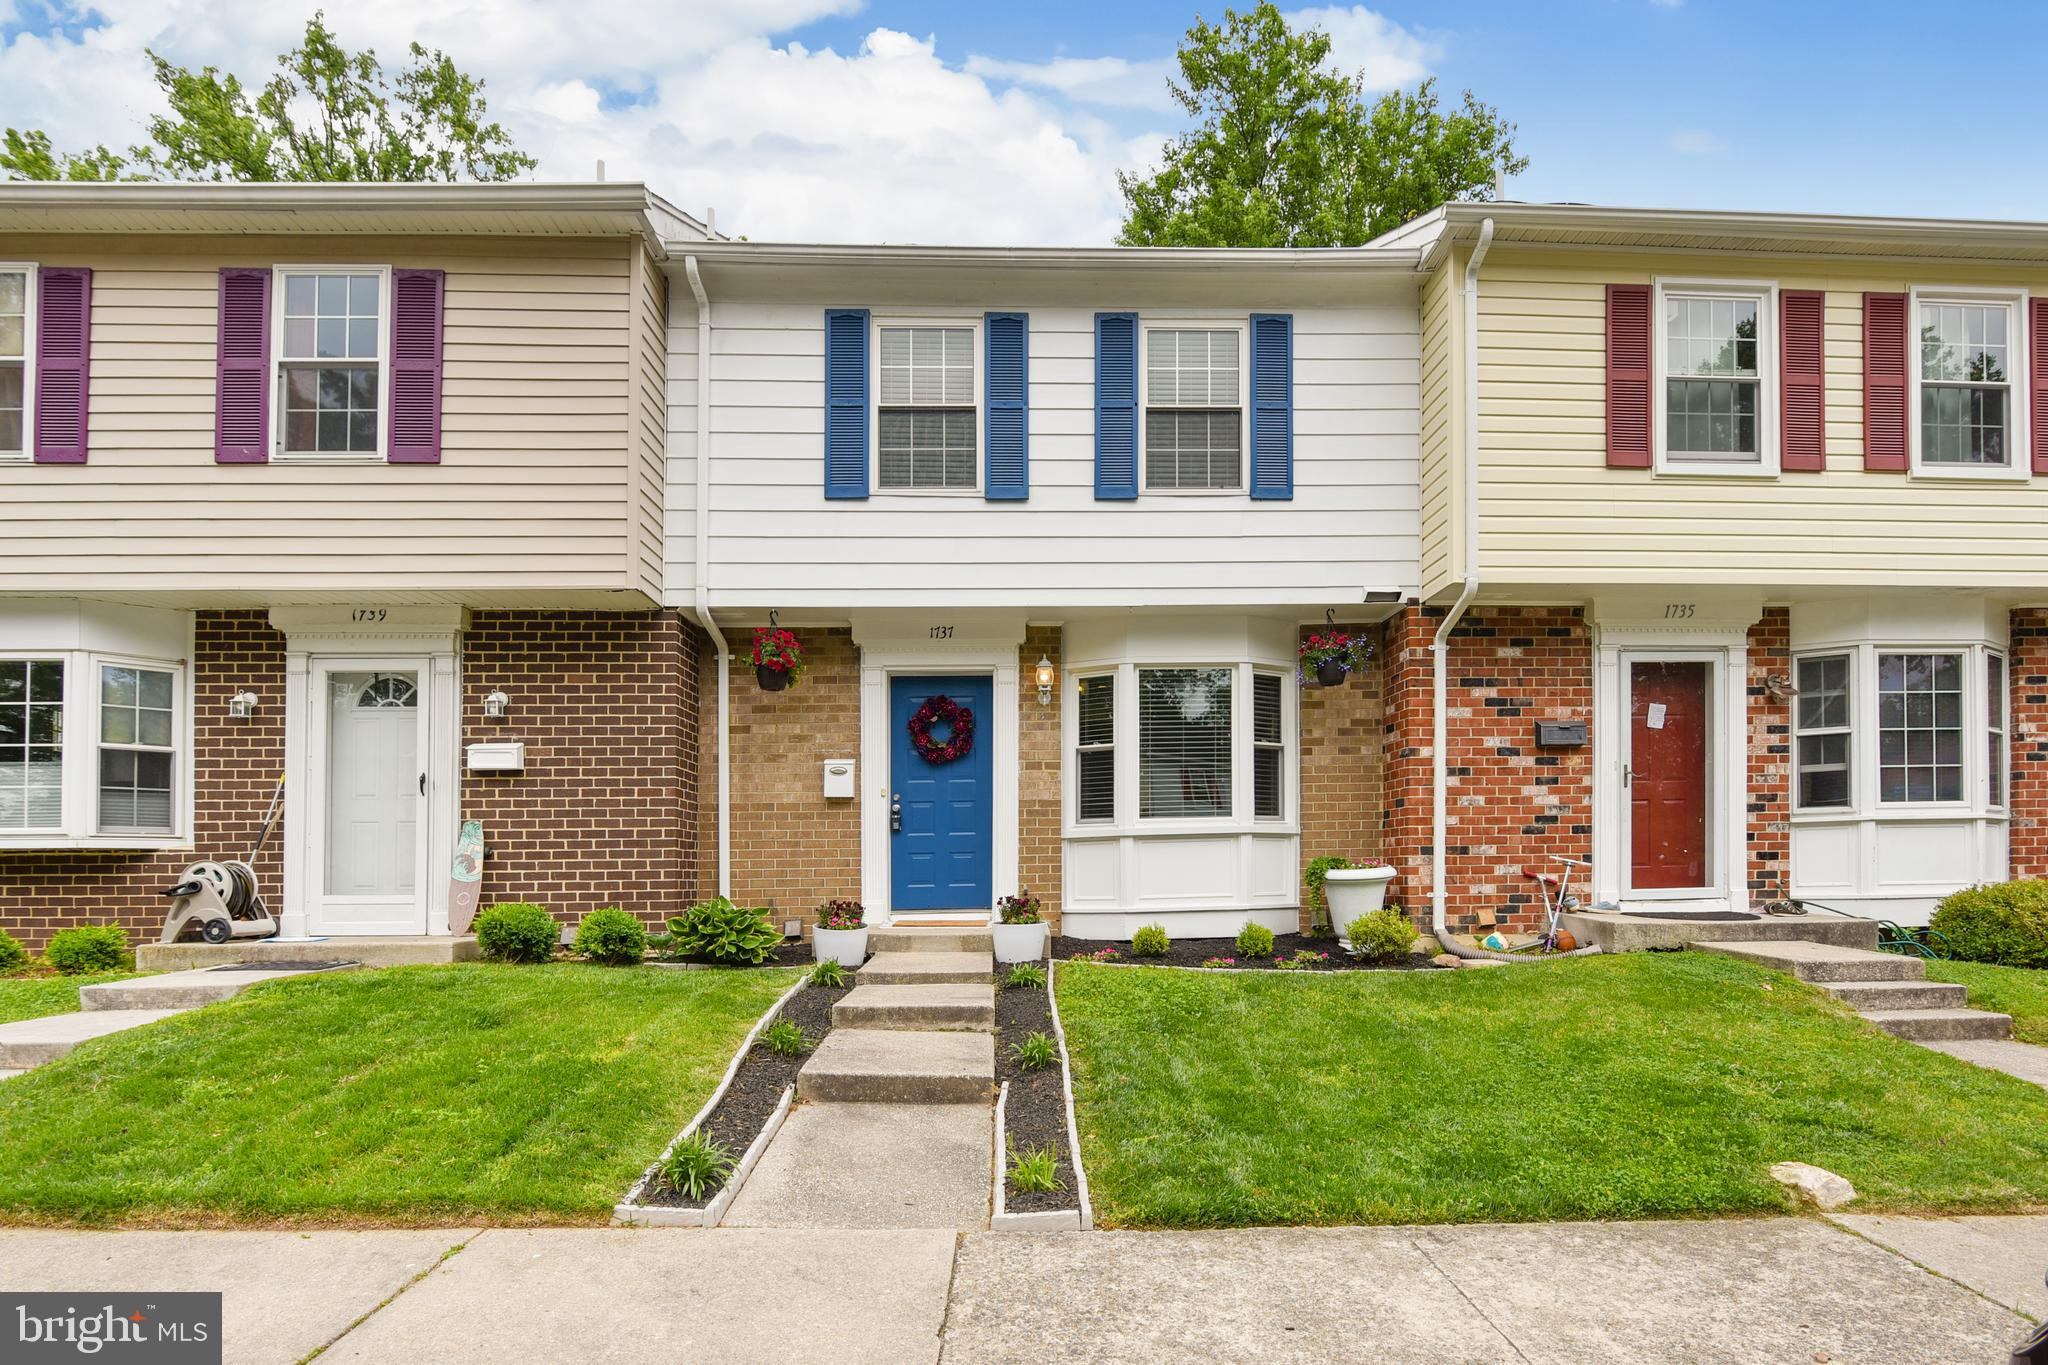 Beautiful 3 Bedrooms- 3.5 Bathrooms Updated Townhouse Conveniently Located Near Rockville & Twinbrook Metros, Marc Train, Restaurants, Shopping, Rockville Town Center & I 270! Updates Include:  Kitchen 2016 with Granite Counter Tops Including a Breakfast Bar Plus SS Appliances, Bathrooms with Ceramic Tile main level 2016 & upstairs 2018, HVAC System & Replacement Windows!  Kitchen with a Bay Window replaced in 2018 Plus a Separate Laundry Room on the Lower Level  Washer Dryer Replaced in 2018!  Lovely Fenced Back Yard with an Open View!  Deadline for All Offers to be Submitted is 6PM Tuesday May 26, 2020.